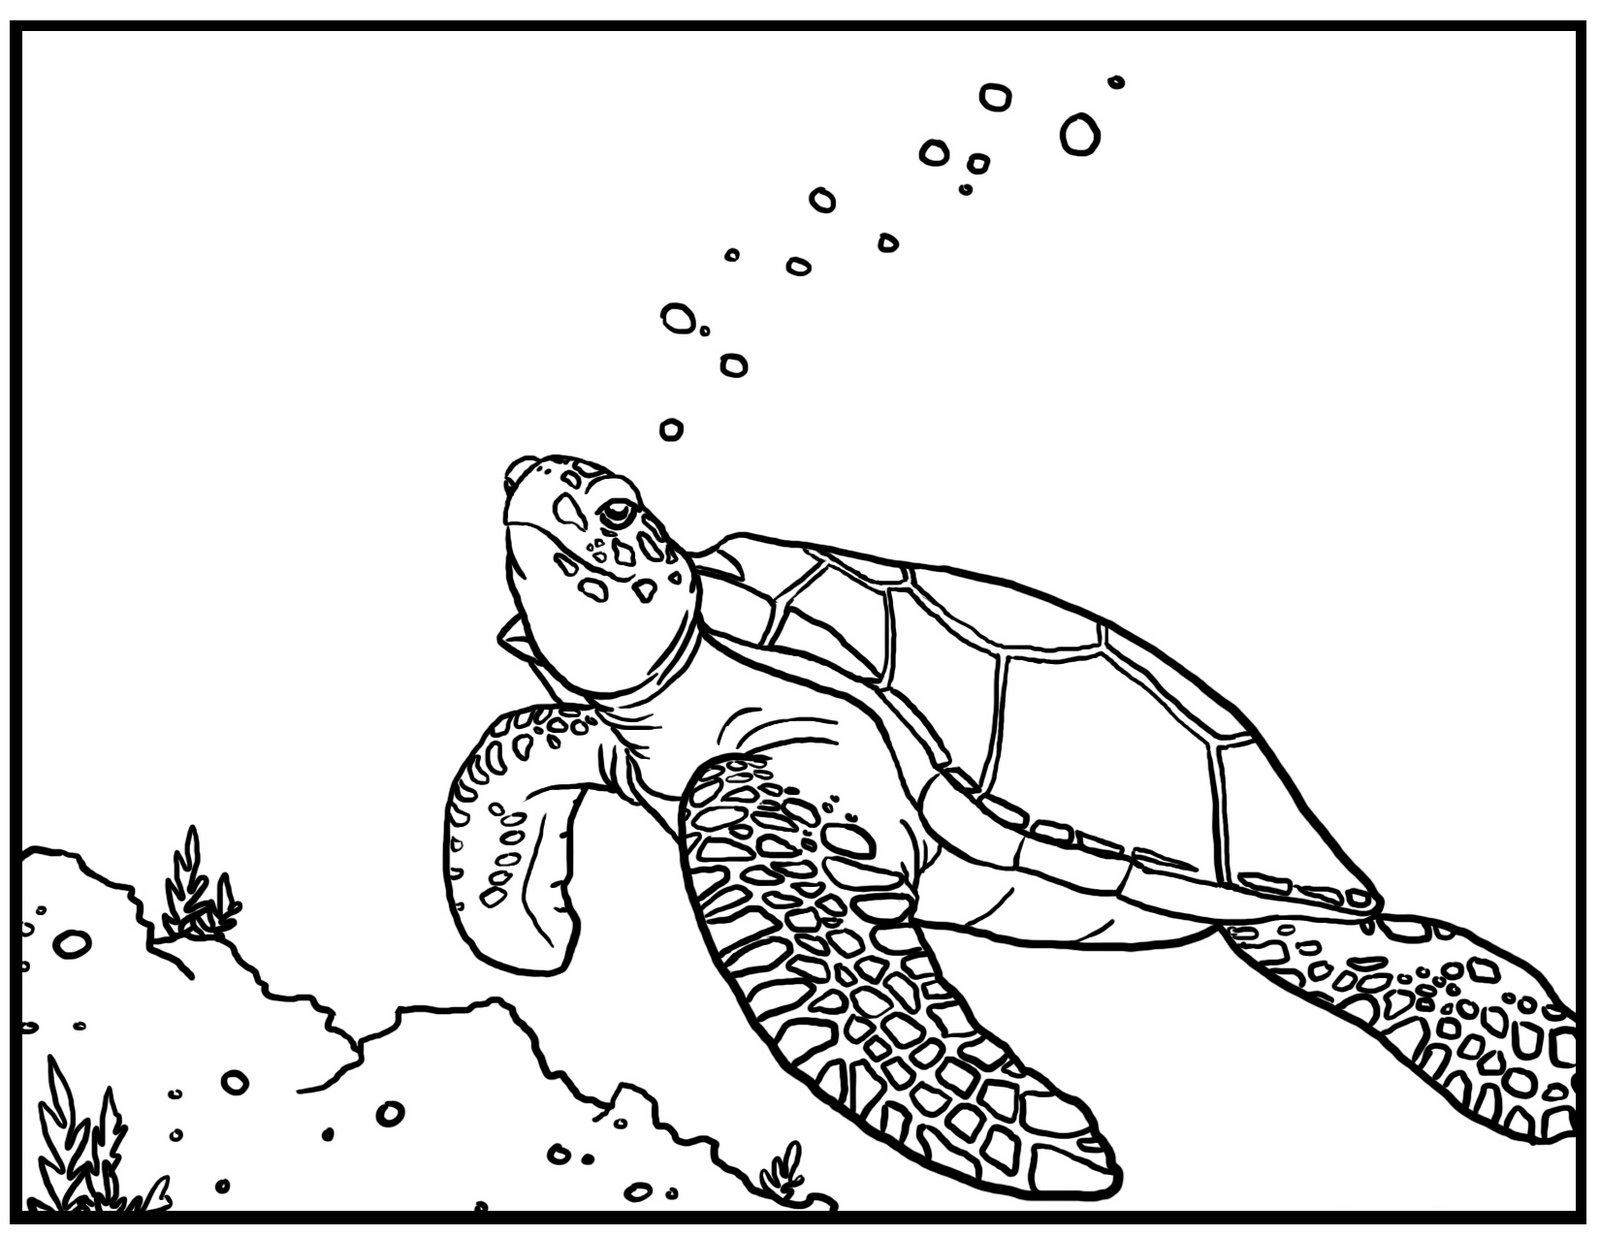 Free Printable Turtle Coloring Pages For Kids Coloring Page Turtle